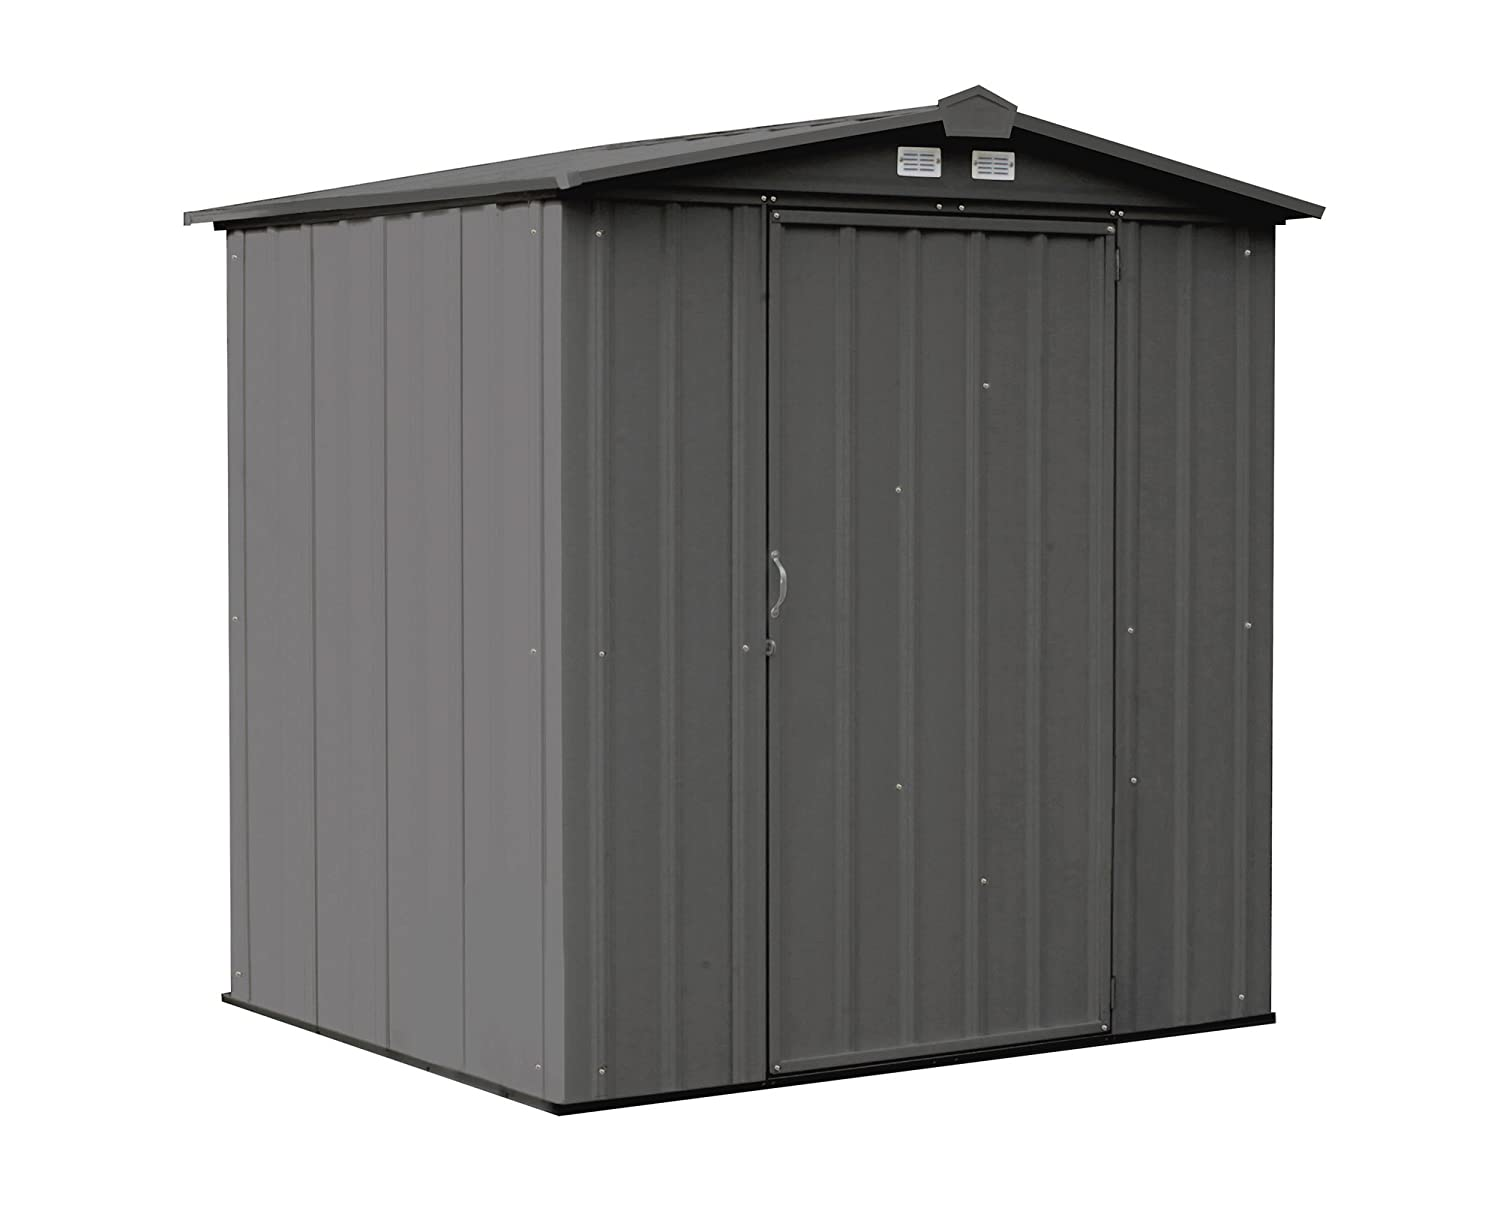 Arrow 6' x 5' EZEE Shed Cream Low Gable Steel Storage Shed with Peak Style Roof